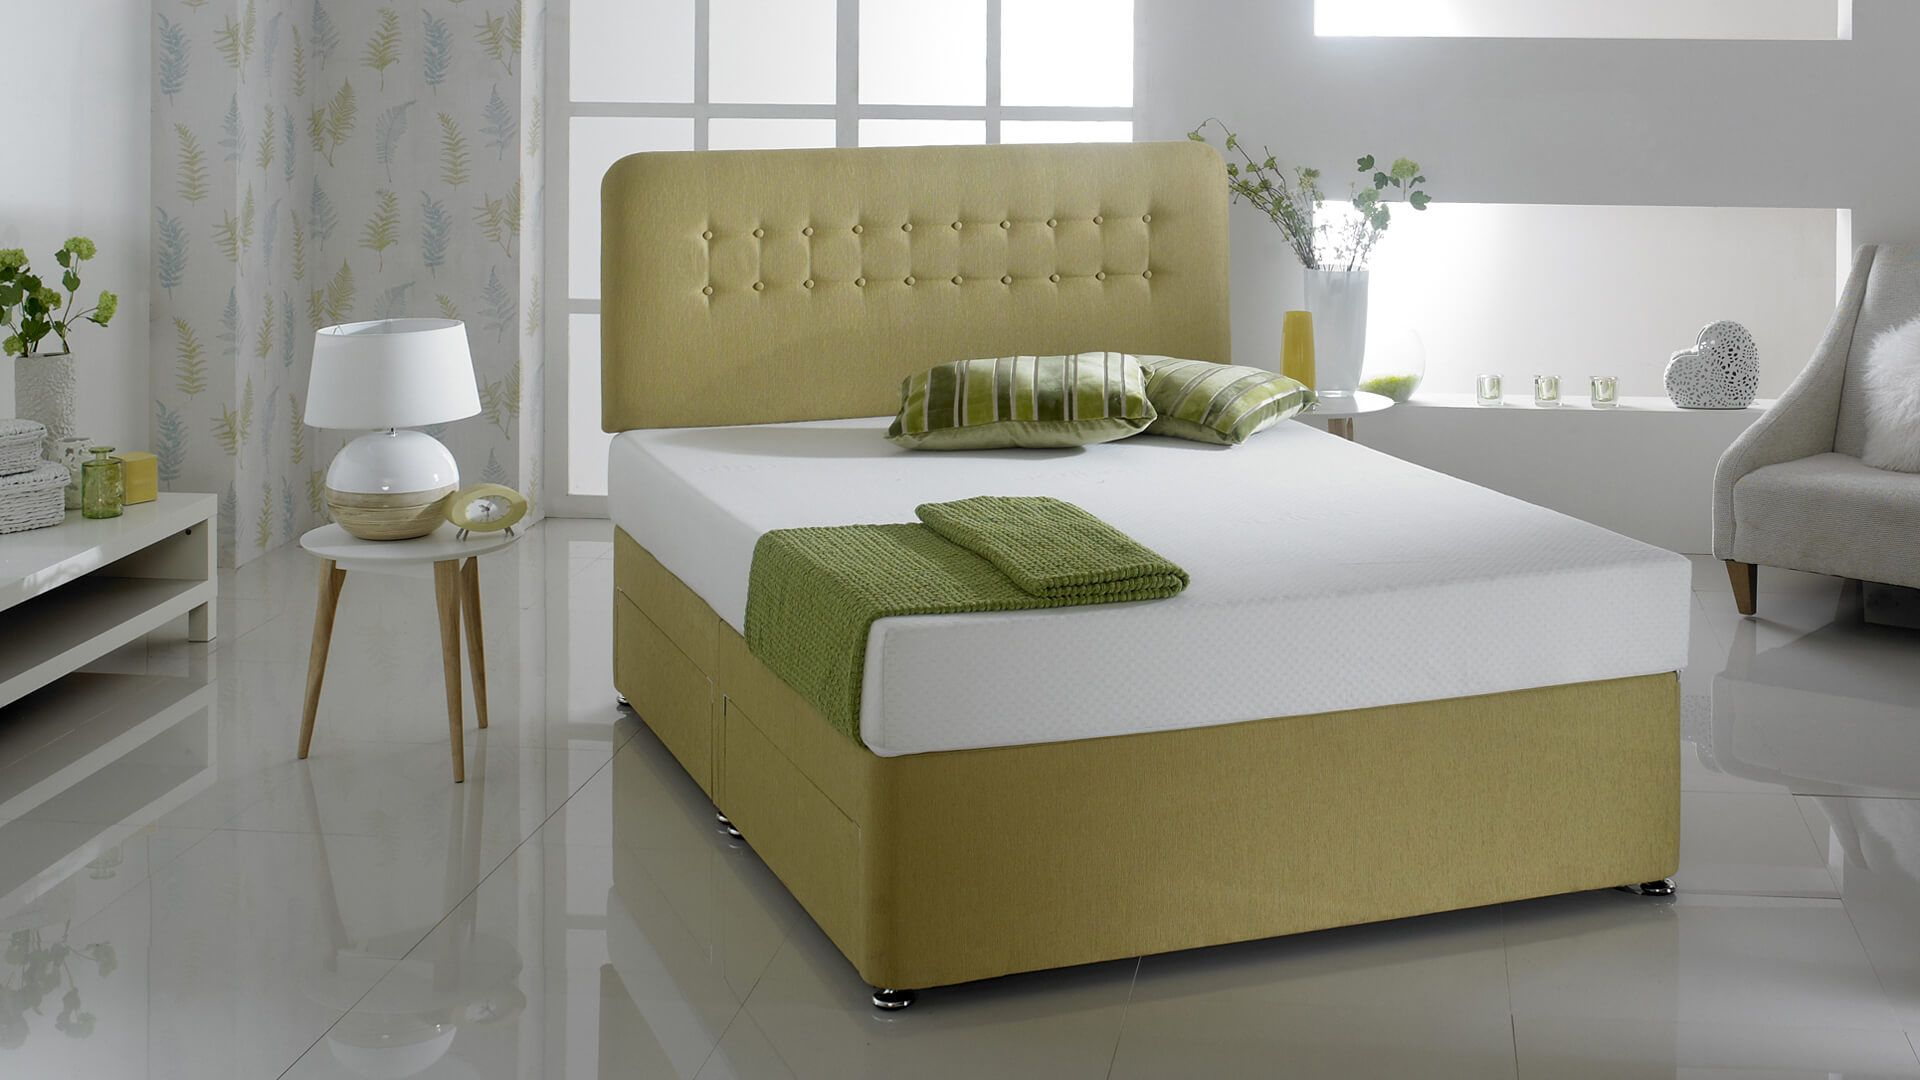 Bed photography by Photography Works (With images) Home